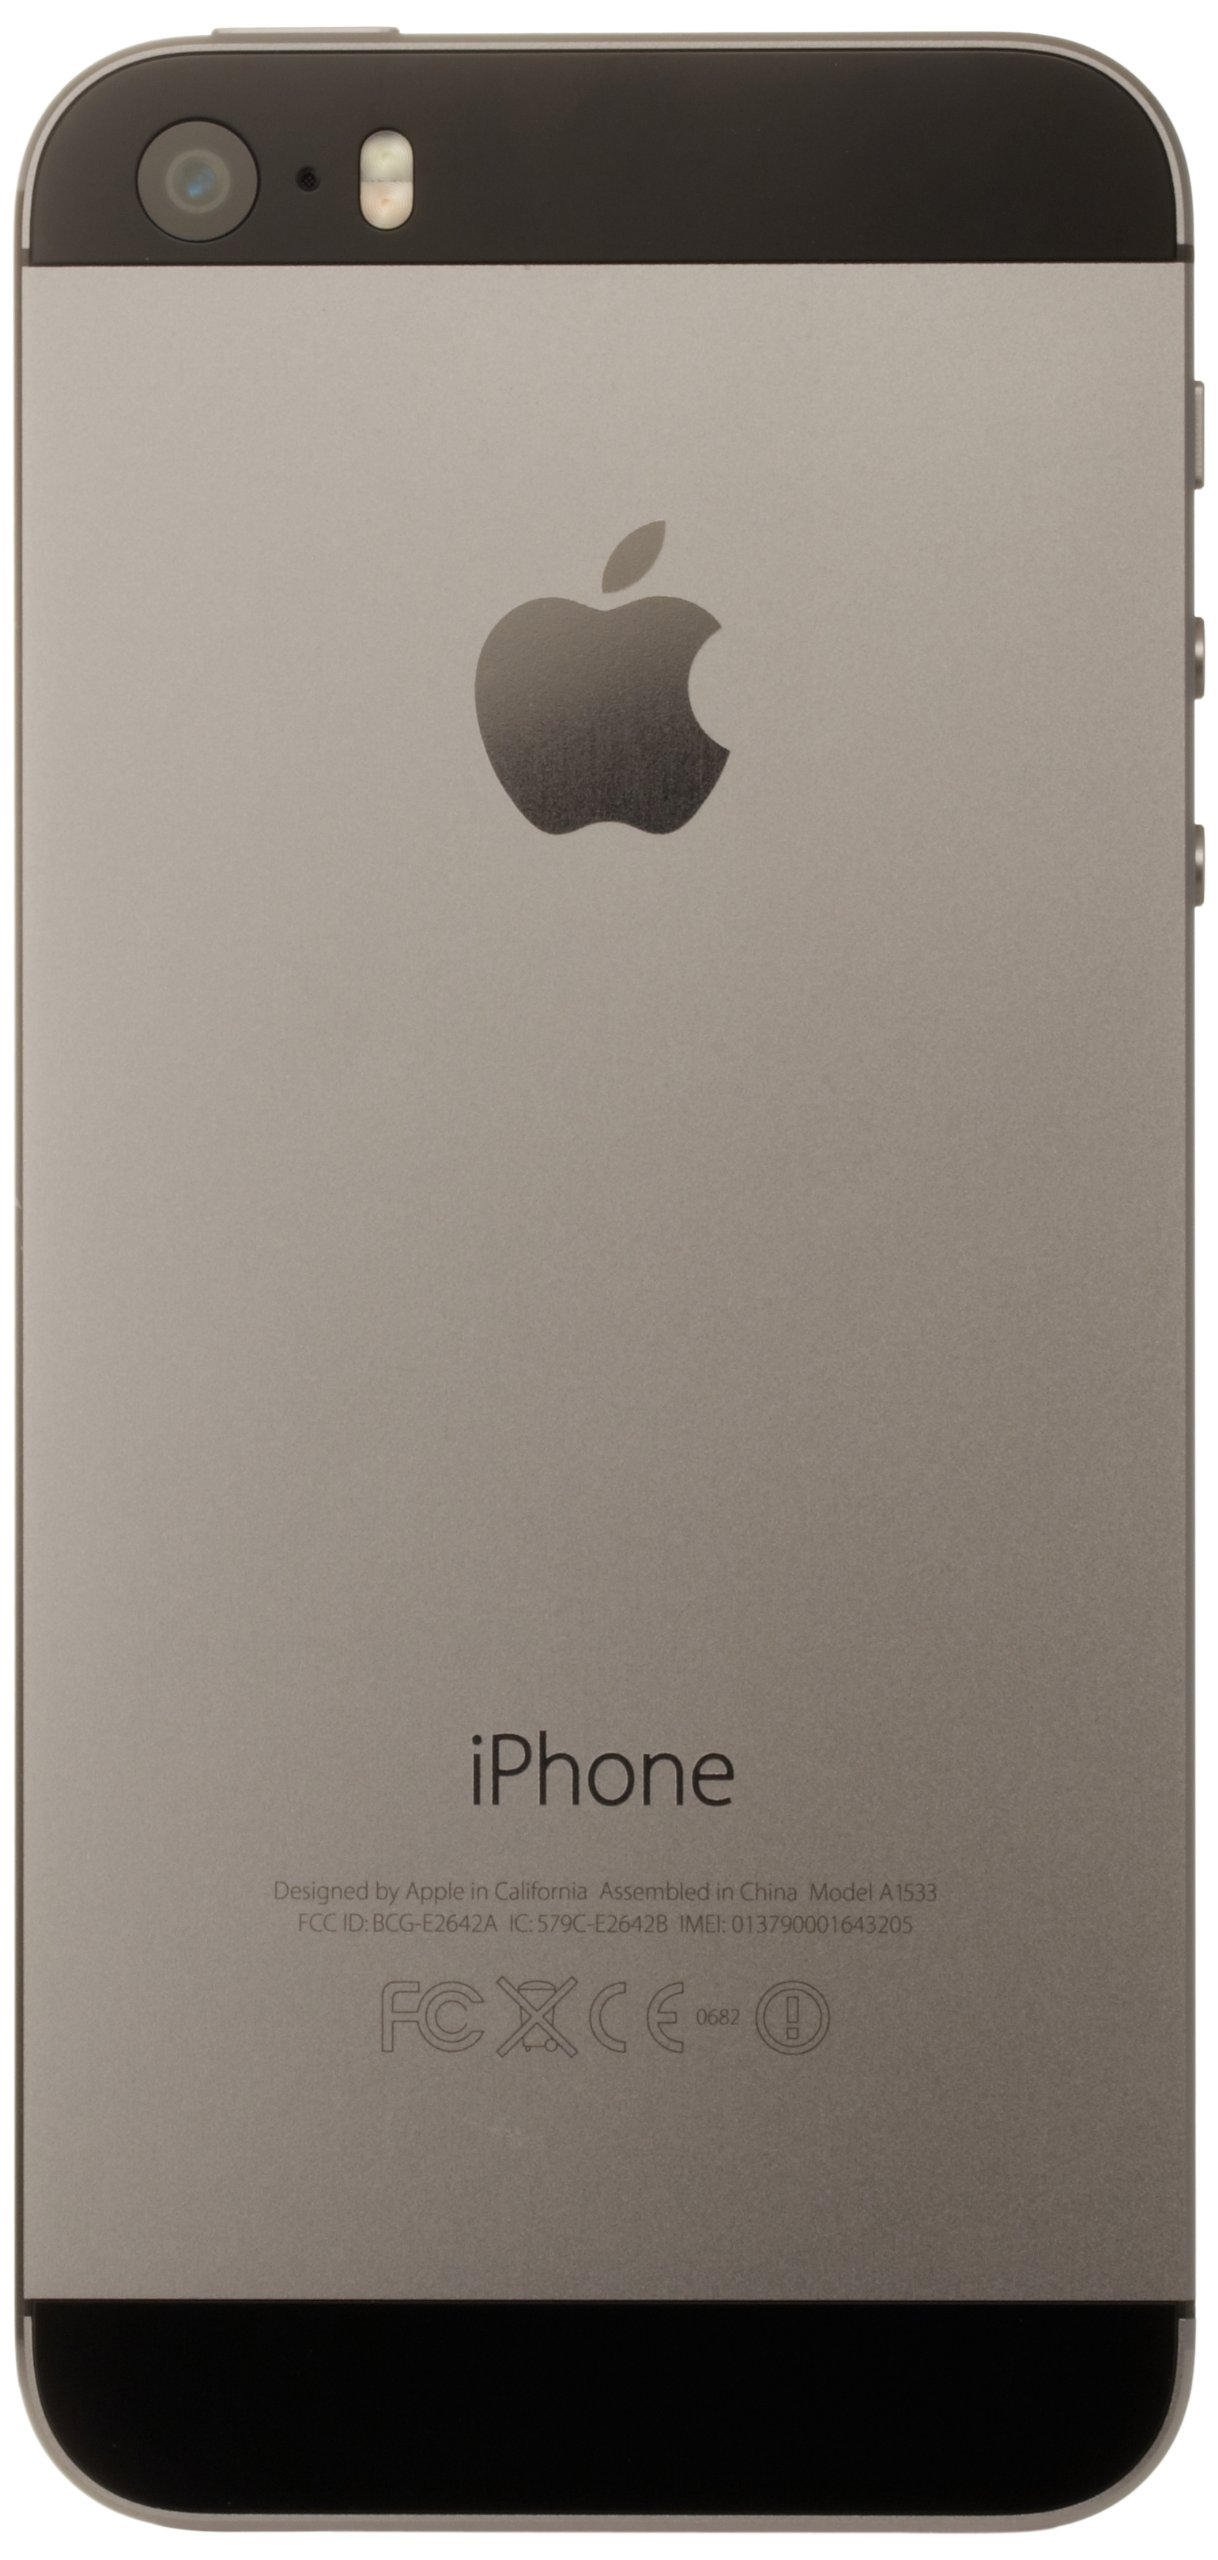 Apple Iphone 5s, 16GB - Unlocked (Space Gray) by Apple (Image #5)